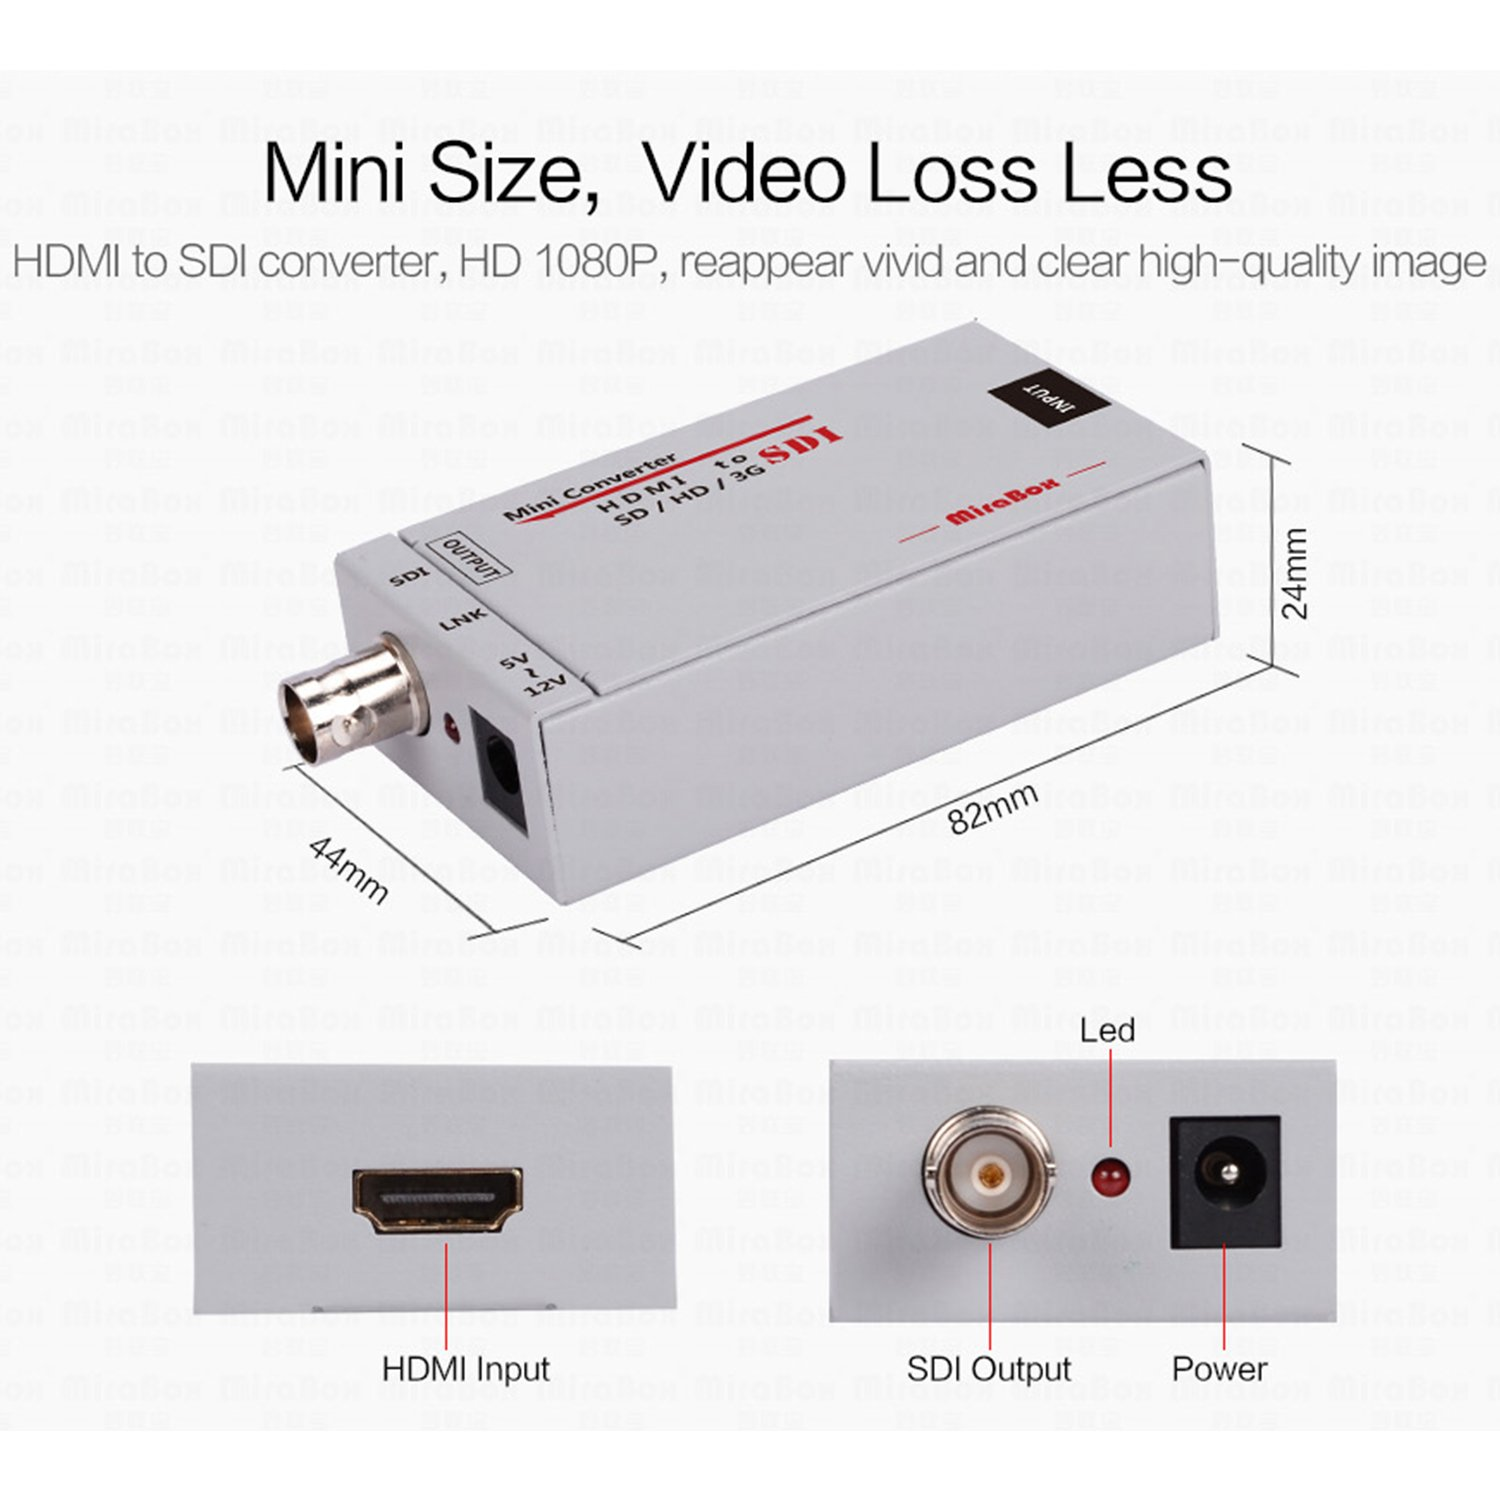 Mirabox HDMI to SDI Converter Scaler Adapter 1080P 1080i 720P 576i 480P MINI 3G with Coaxial Audio Output for Home Theater Cinema PC HD (Grey) by Mirabox (Image #3)